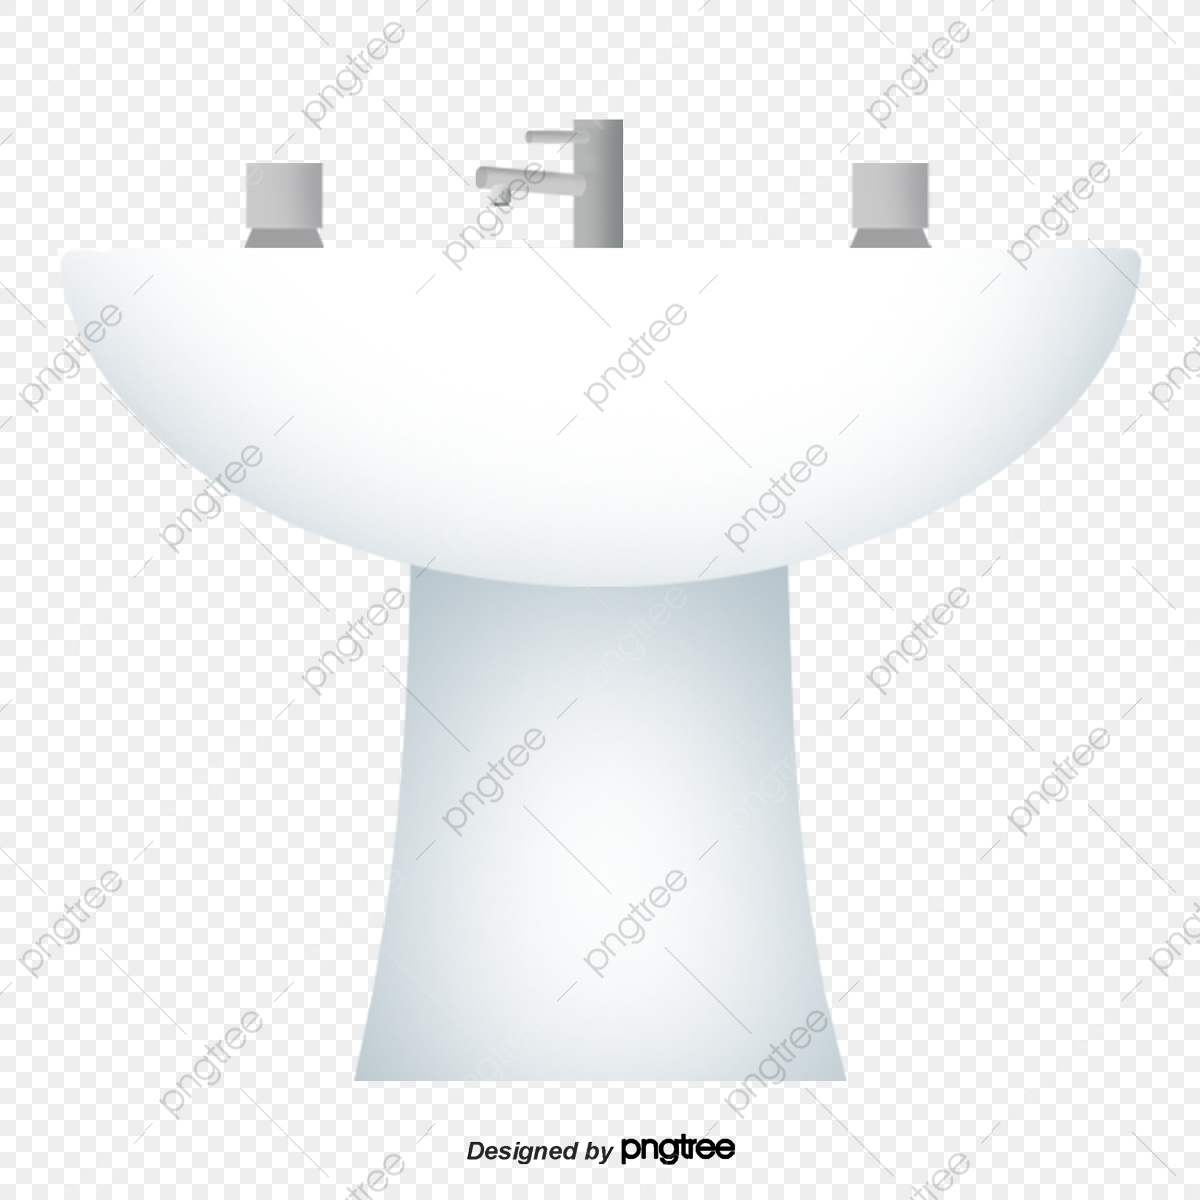 https fr pngtree com freepng bathroom sink faucet 4838464 html